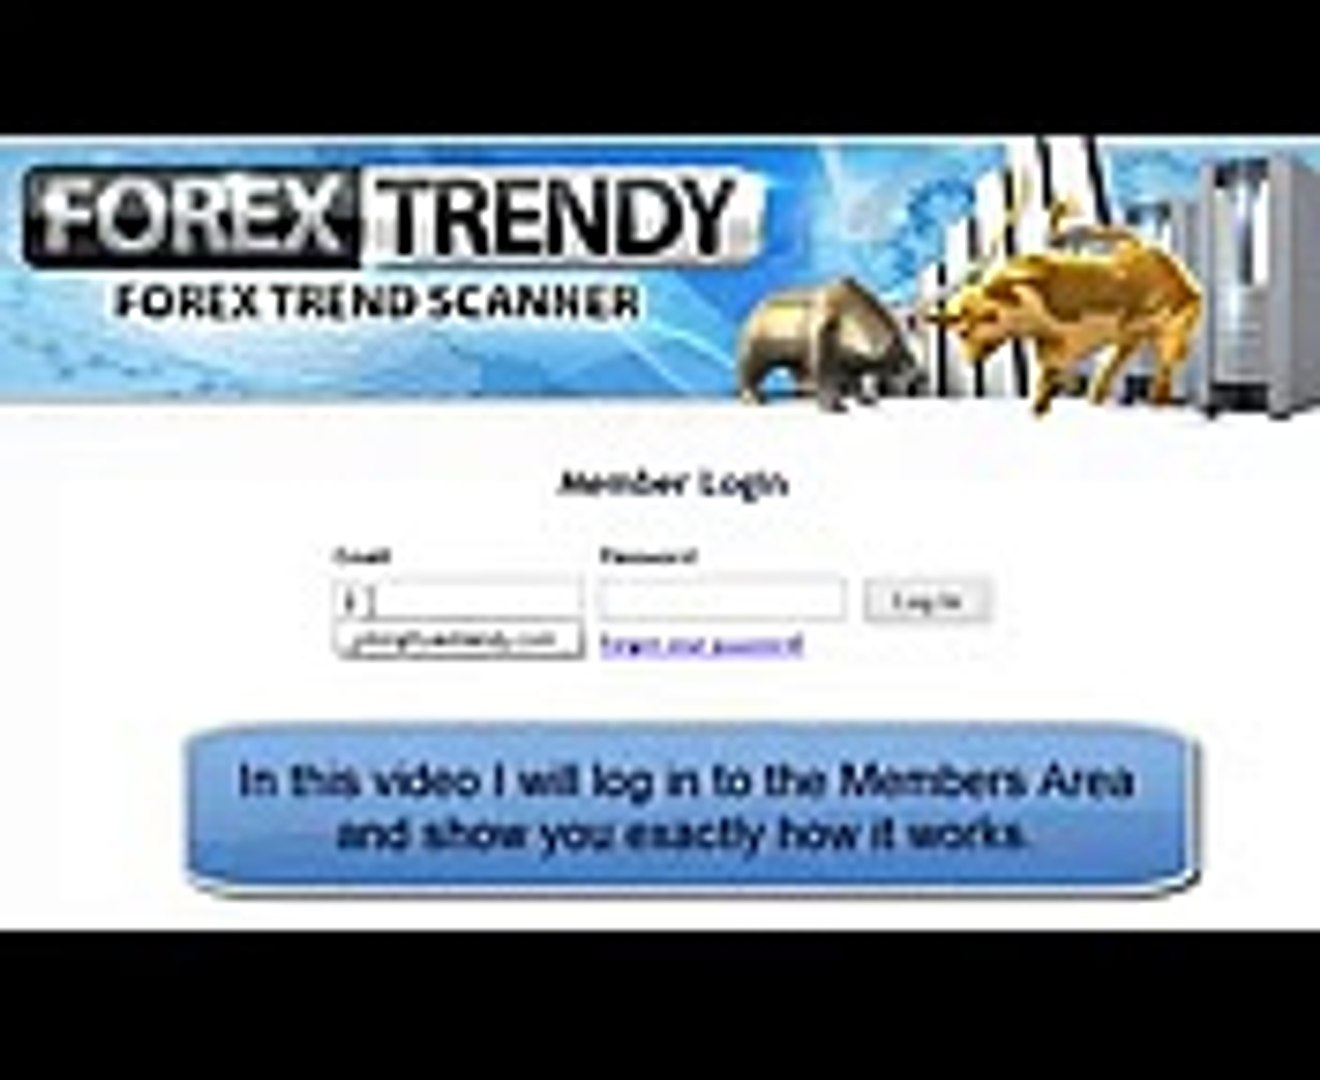 Forex trendy members edgesforextendedlayout uiviewcontroller reference